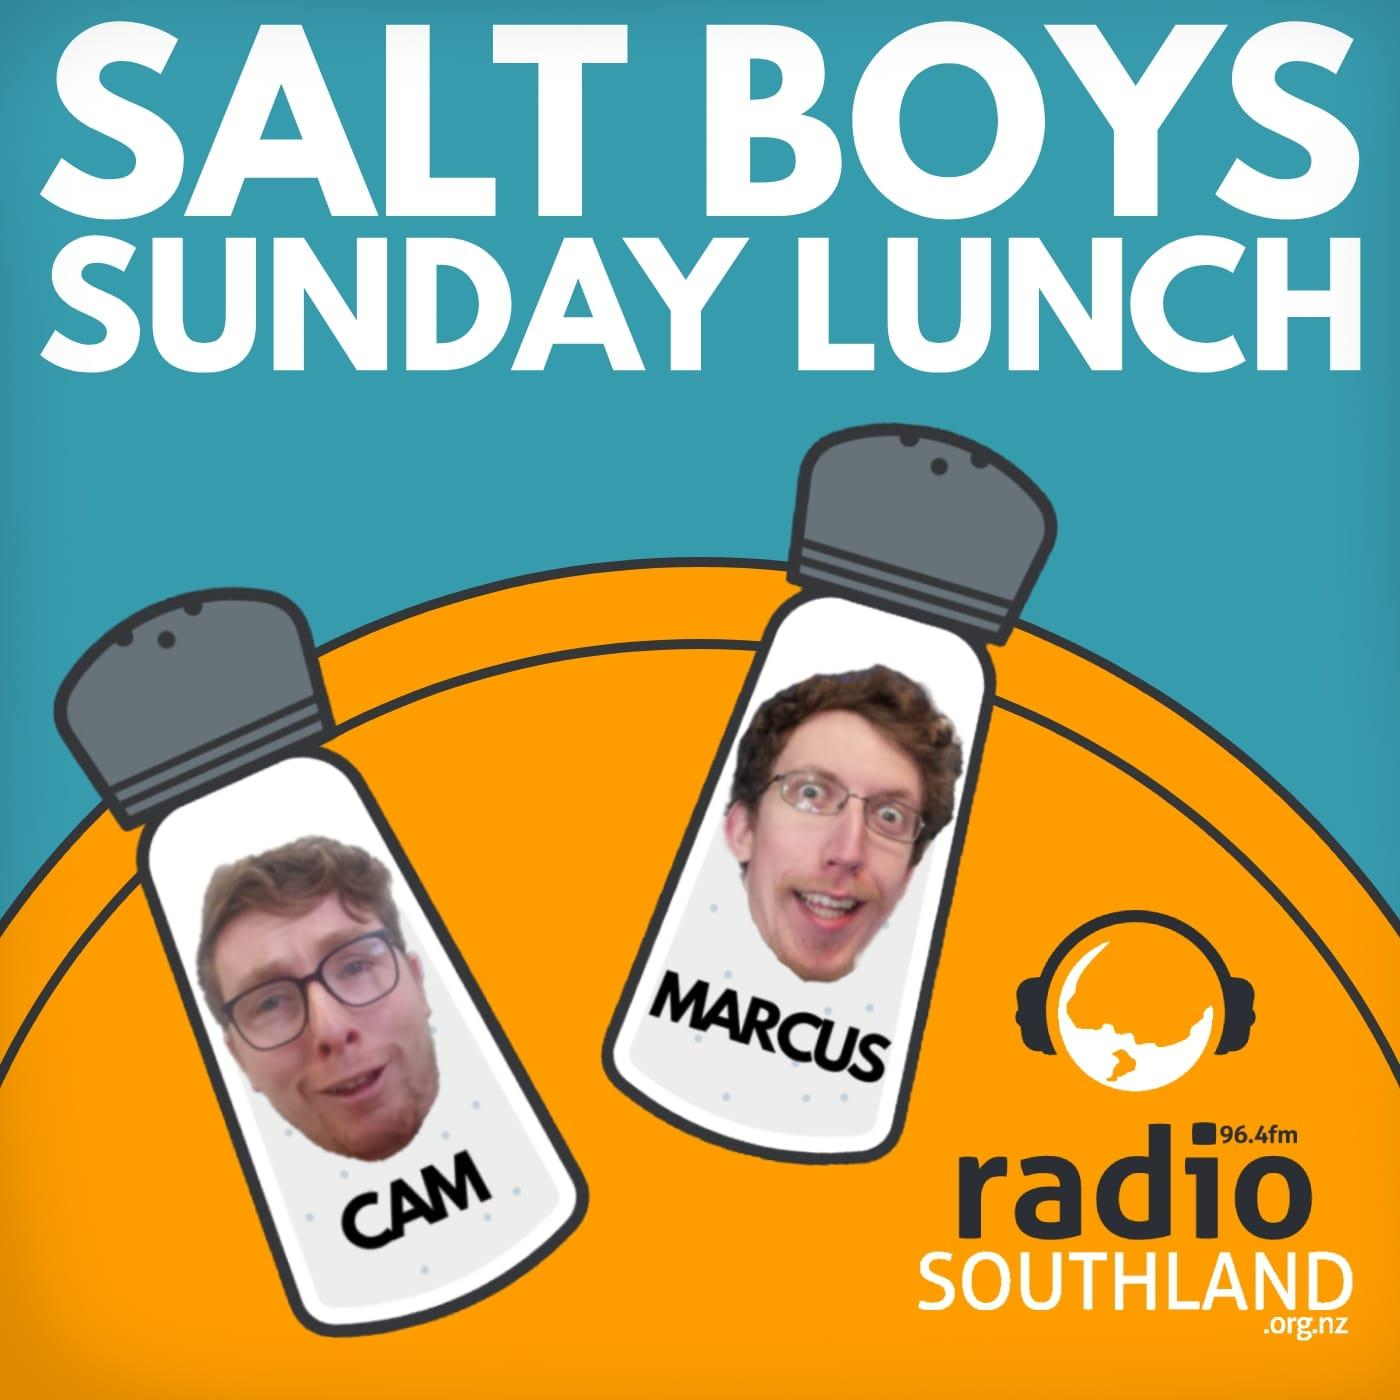 Salt Boys - Marcus and Guests